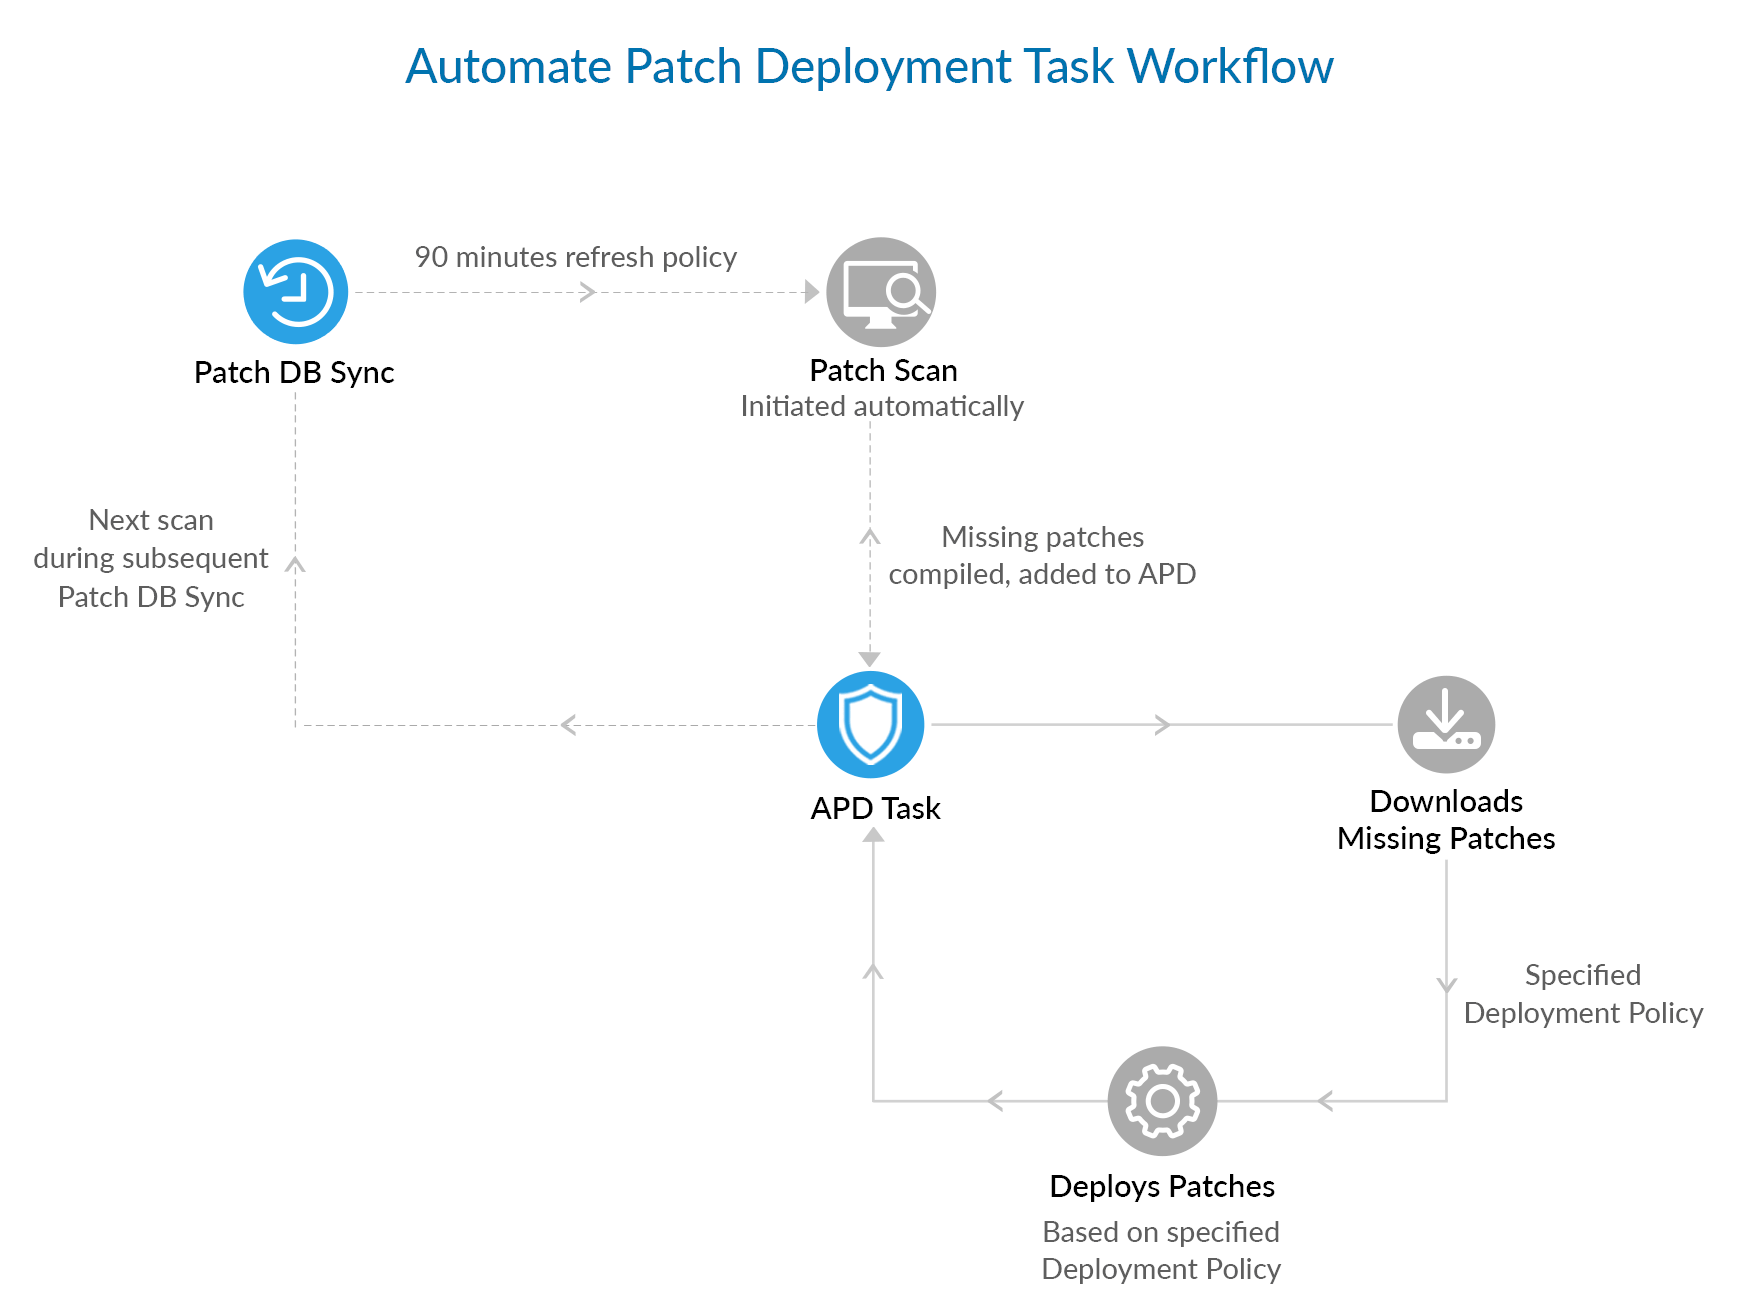 Automated Patch Deployment - Deploy missing patches